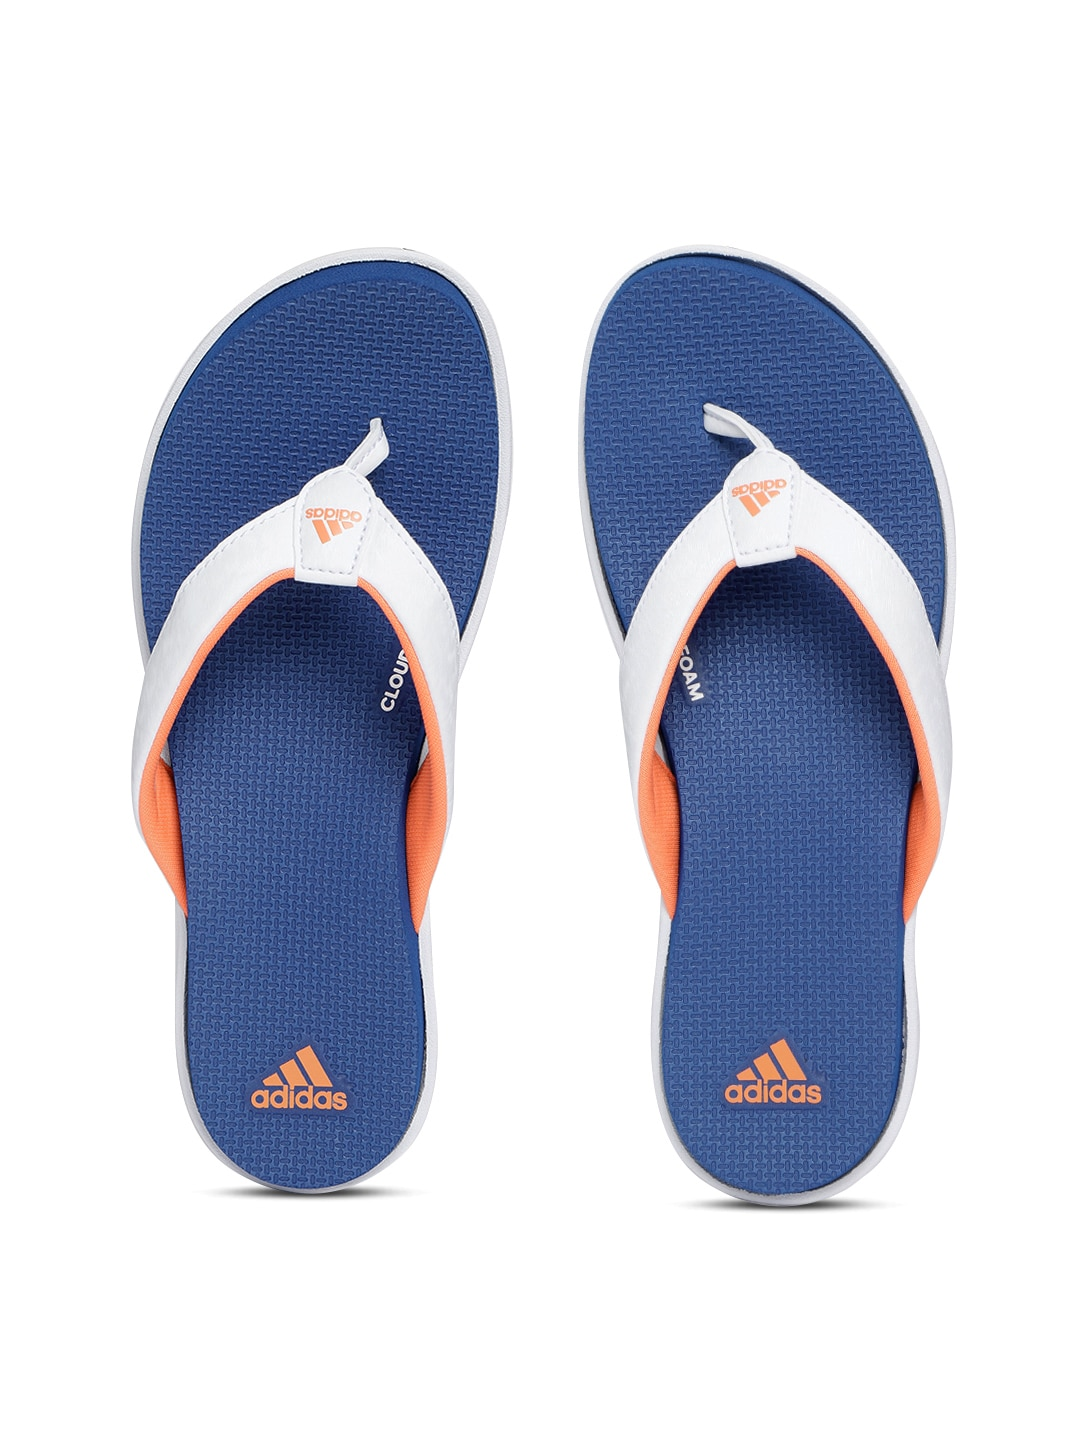 2f8b358cc Adidas Adipure Vivida Thong White Flip Flops for women - Get stylish ...